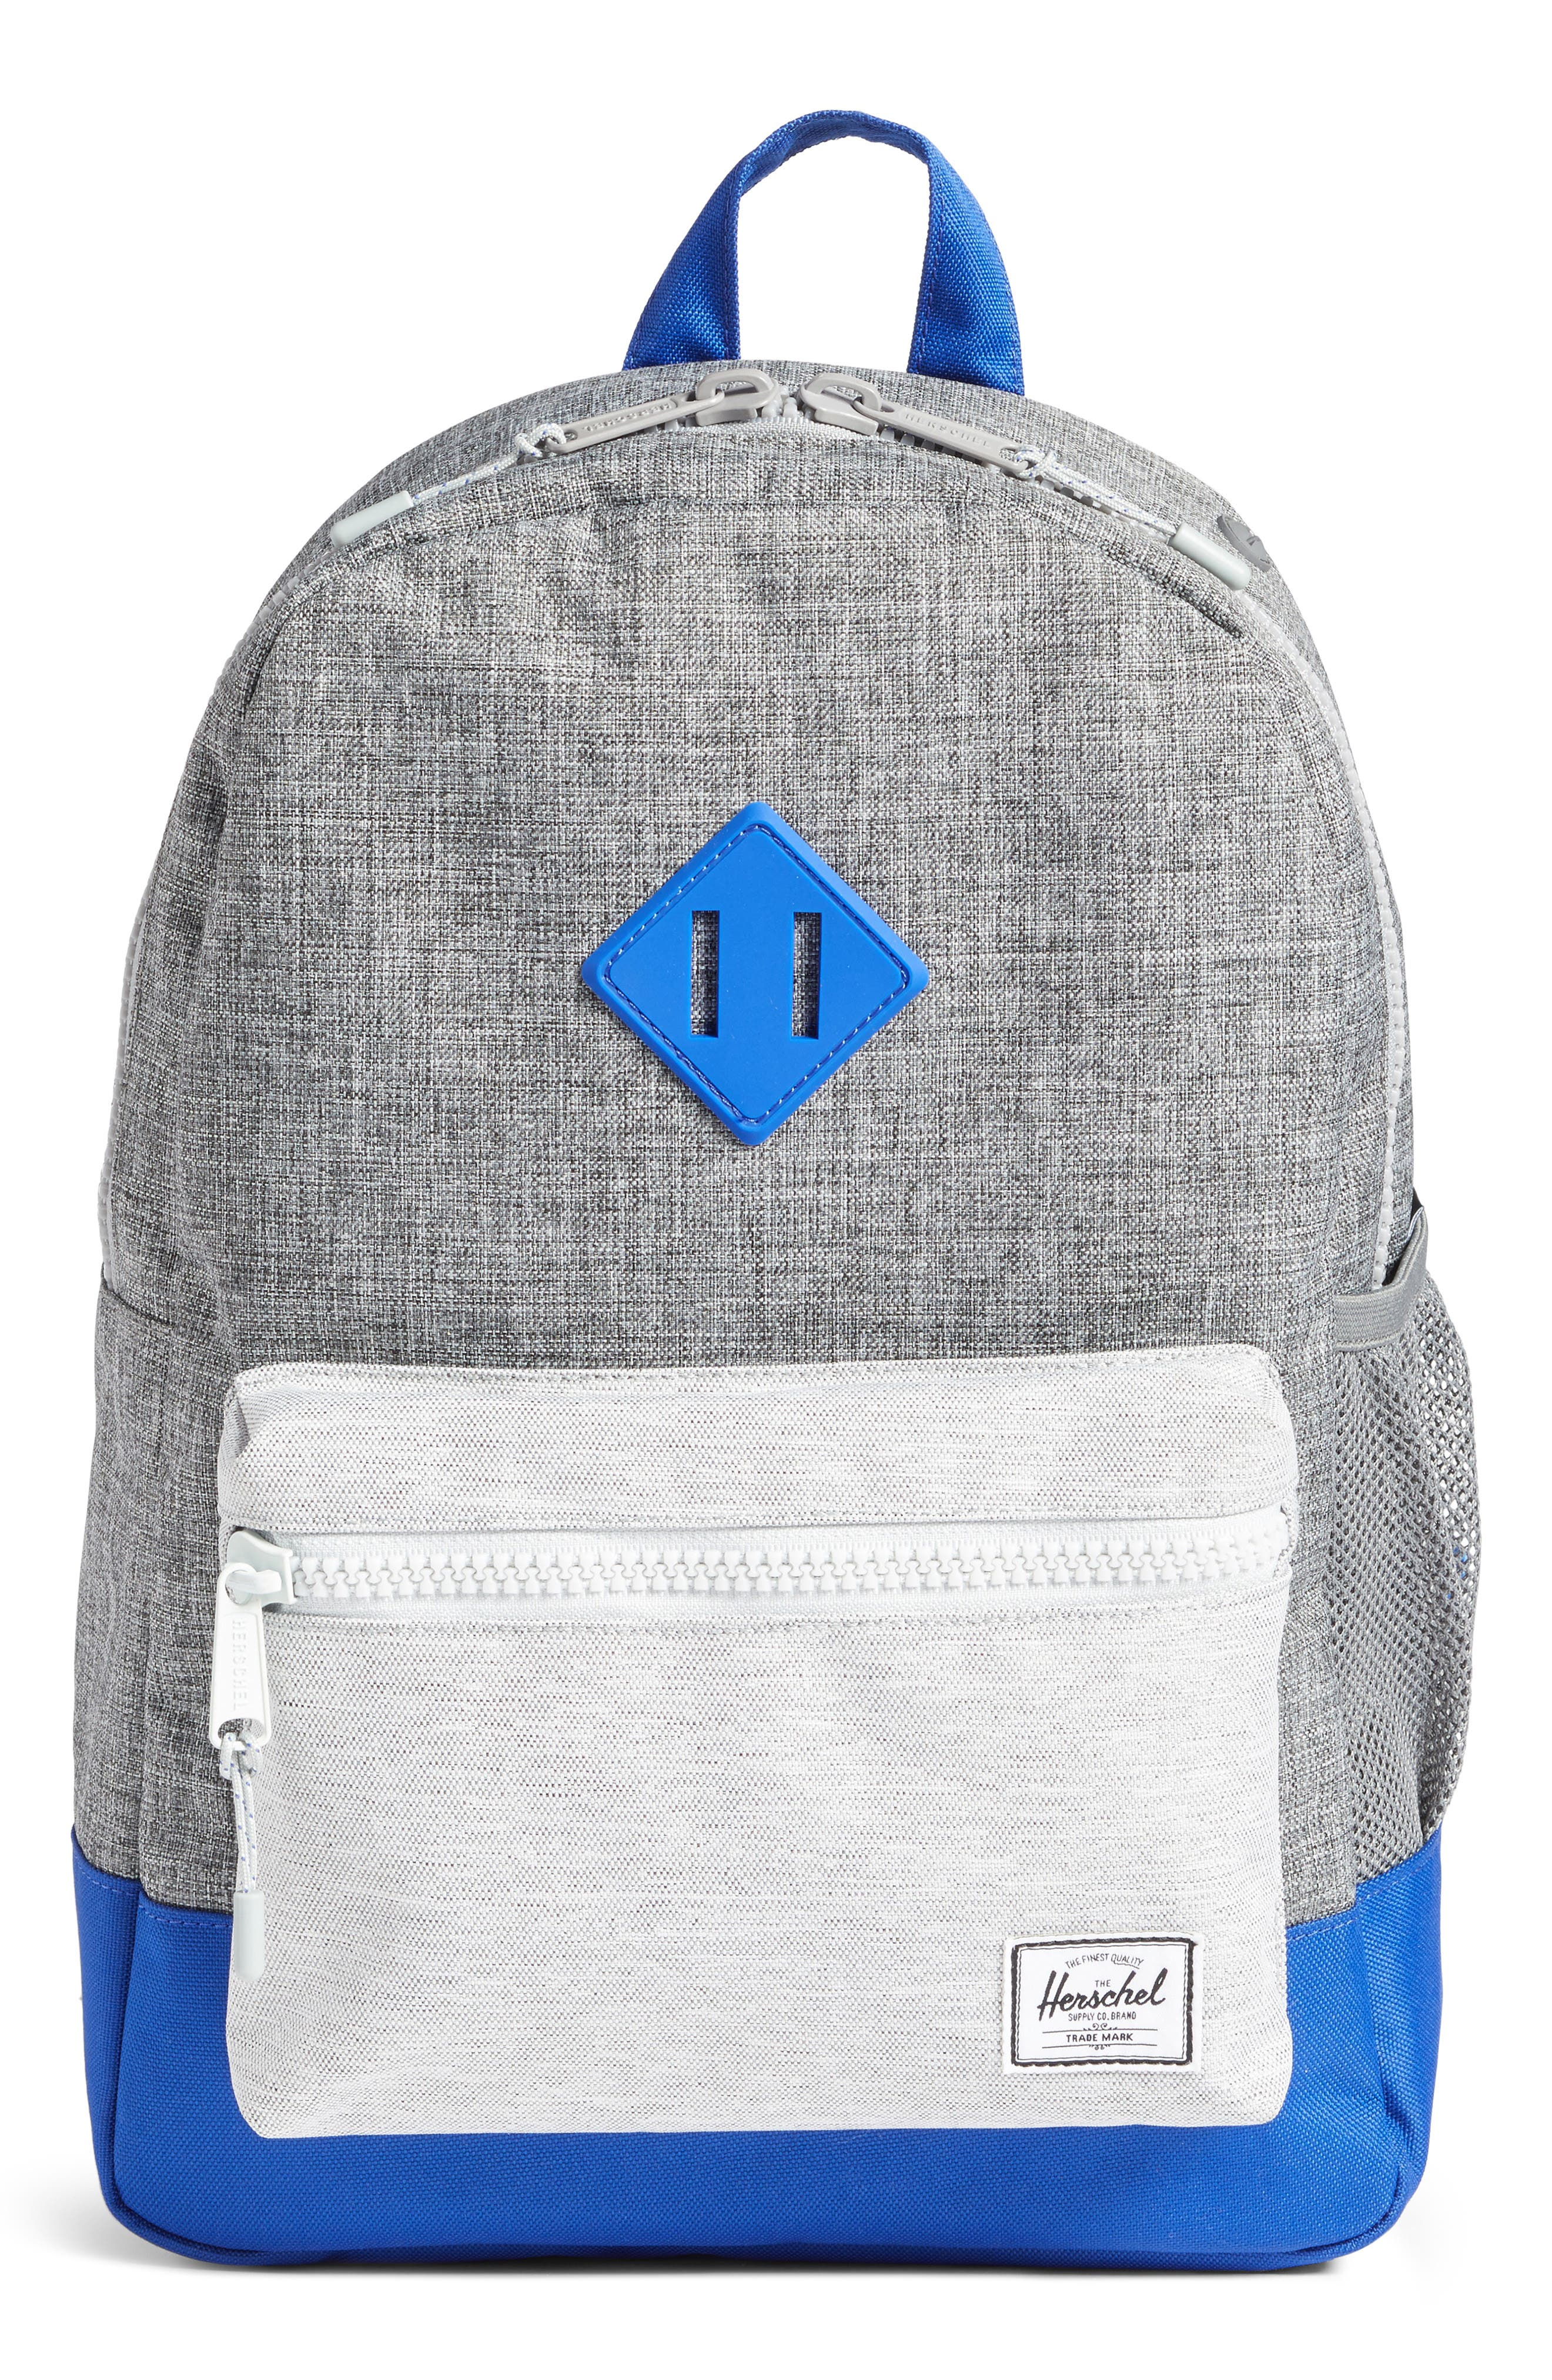 Heritage Colorblocked Backpack,                         Main,                         color, 001